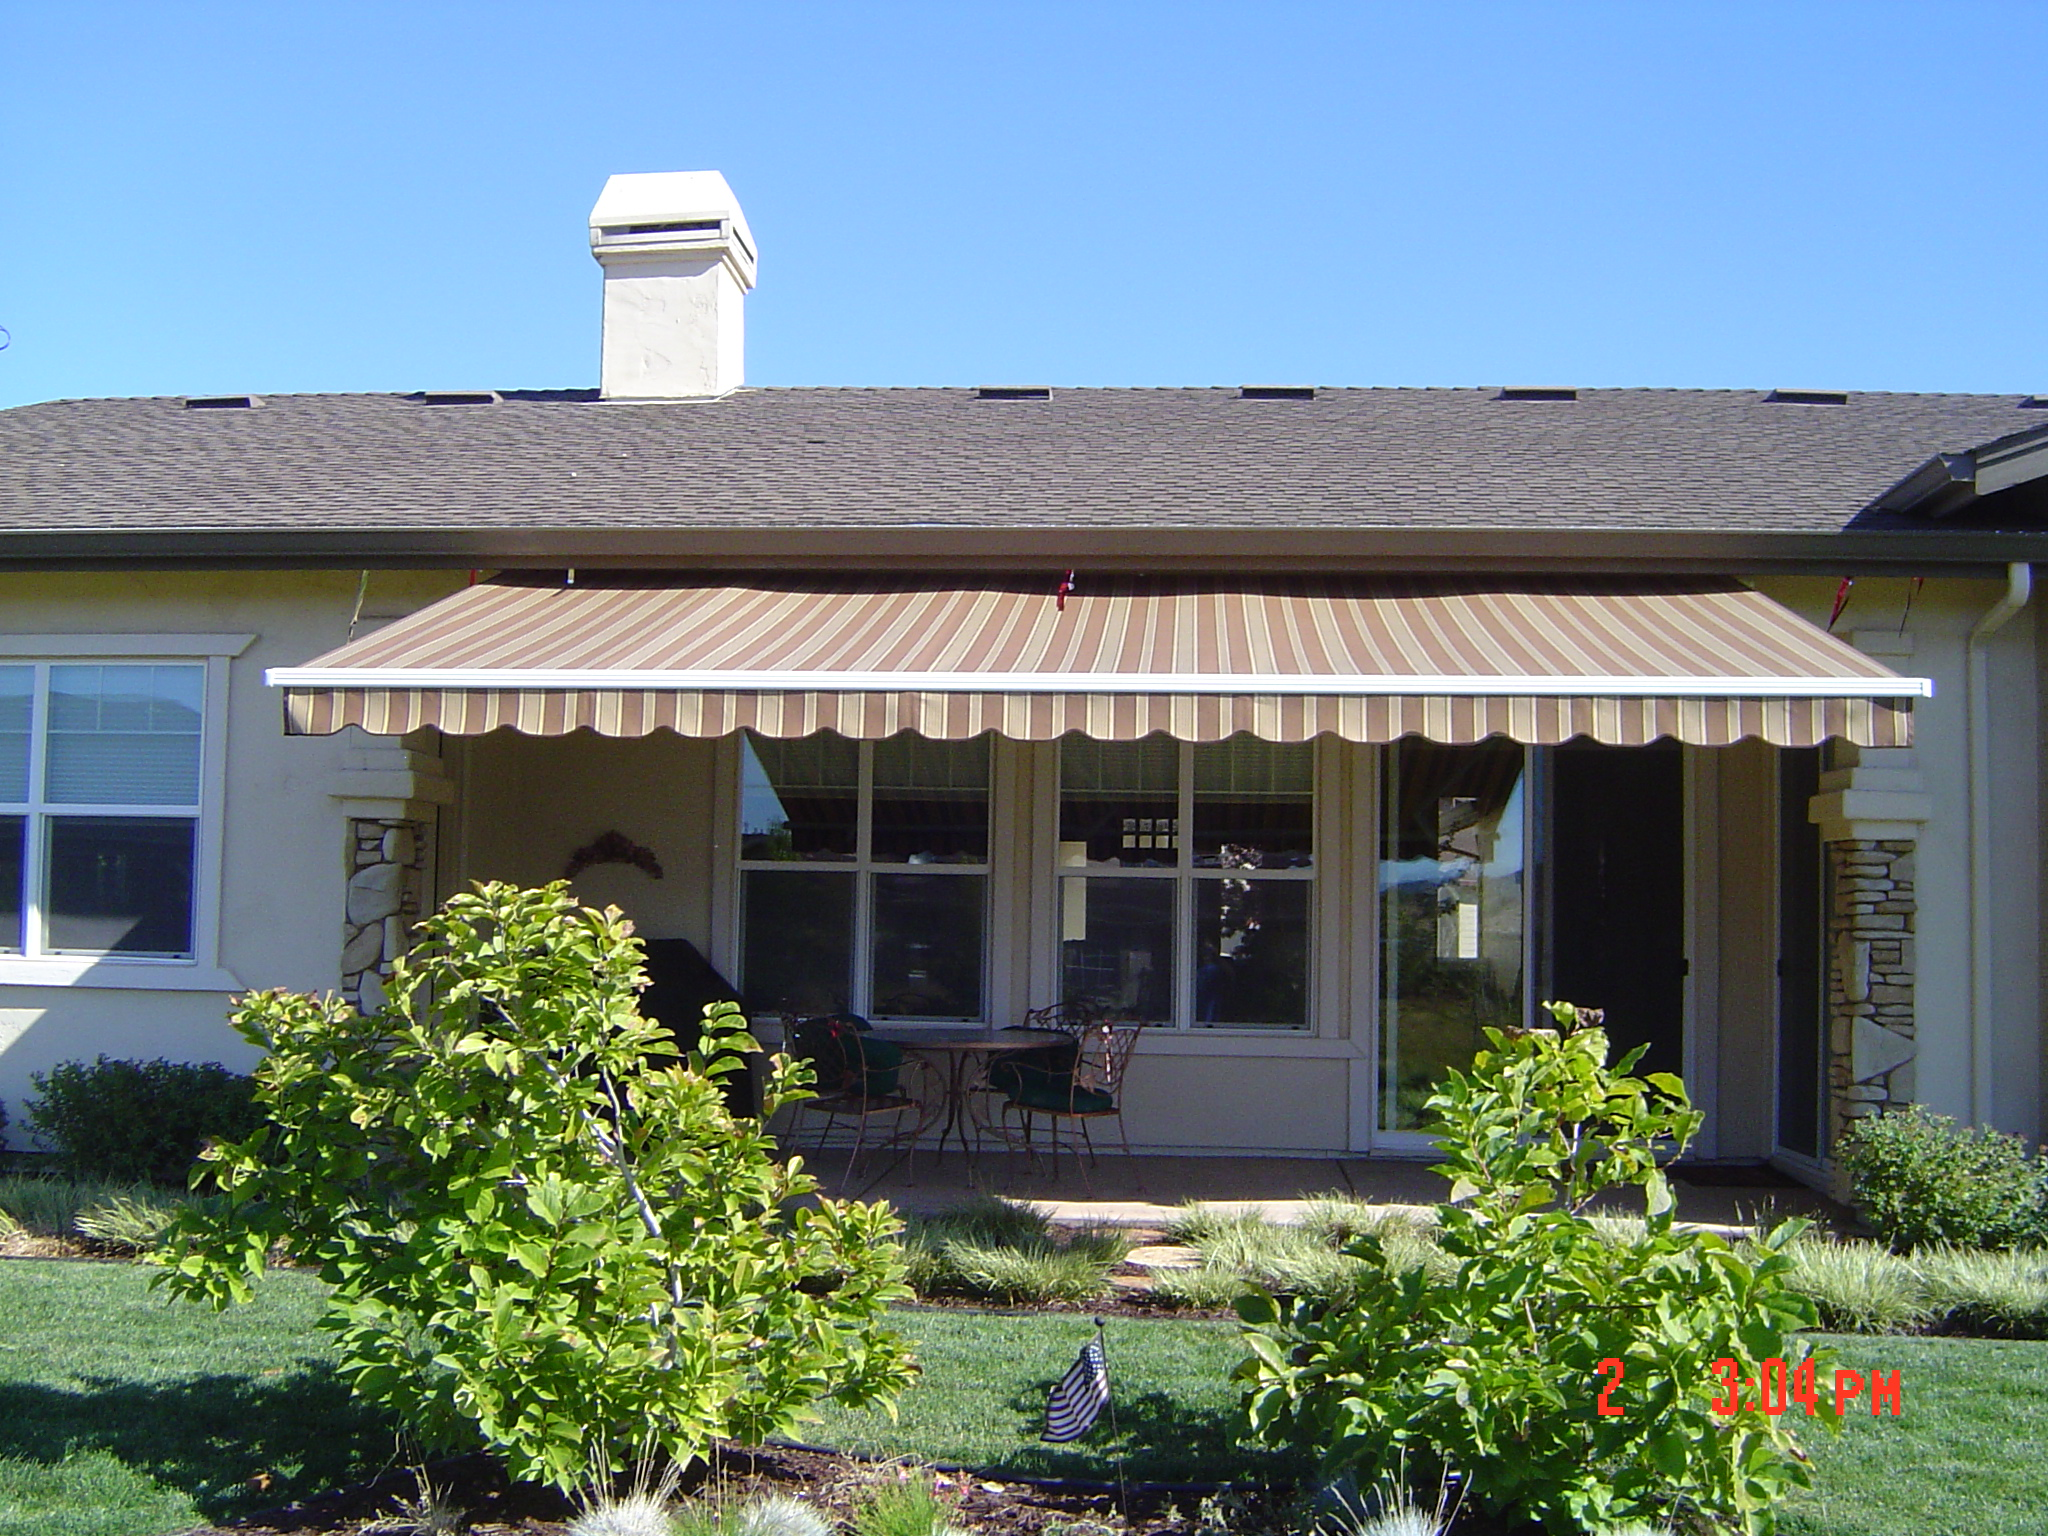 Retractable-over-Patio - Seaspray Awnings & Boat Covers